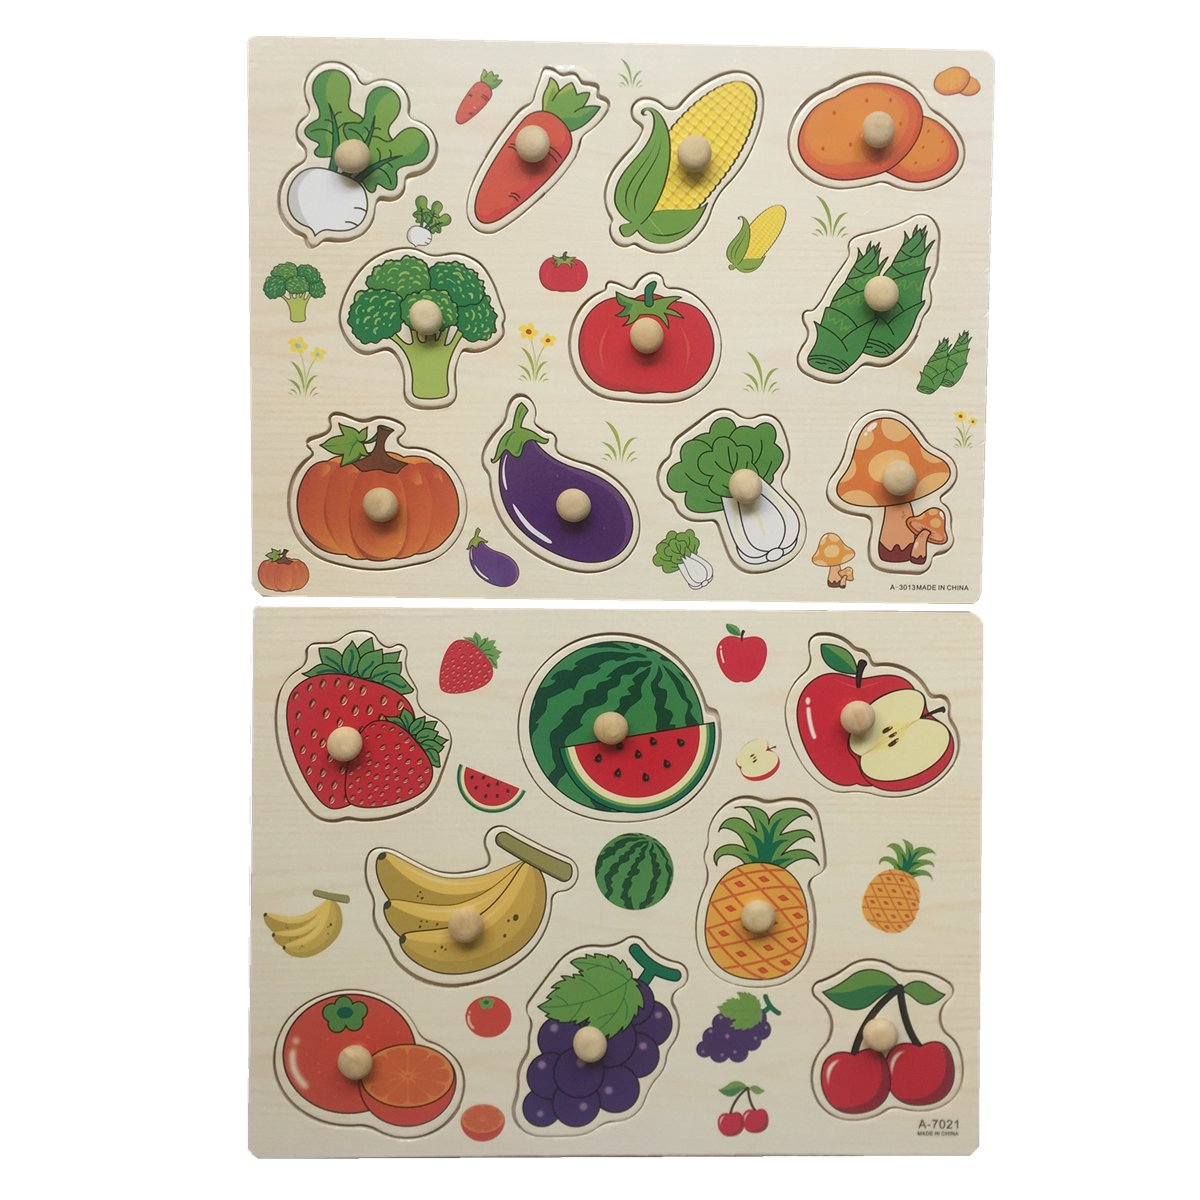 Muxihosn Home Learning Preschool Early Educational Development Colorful Fruit and Vegetables Wooden Peg Puzzle